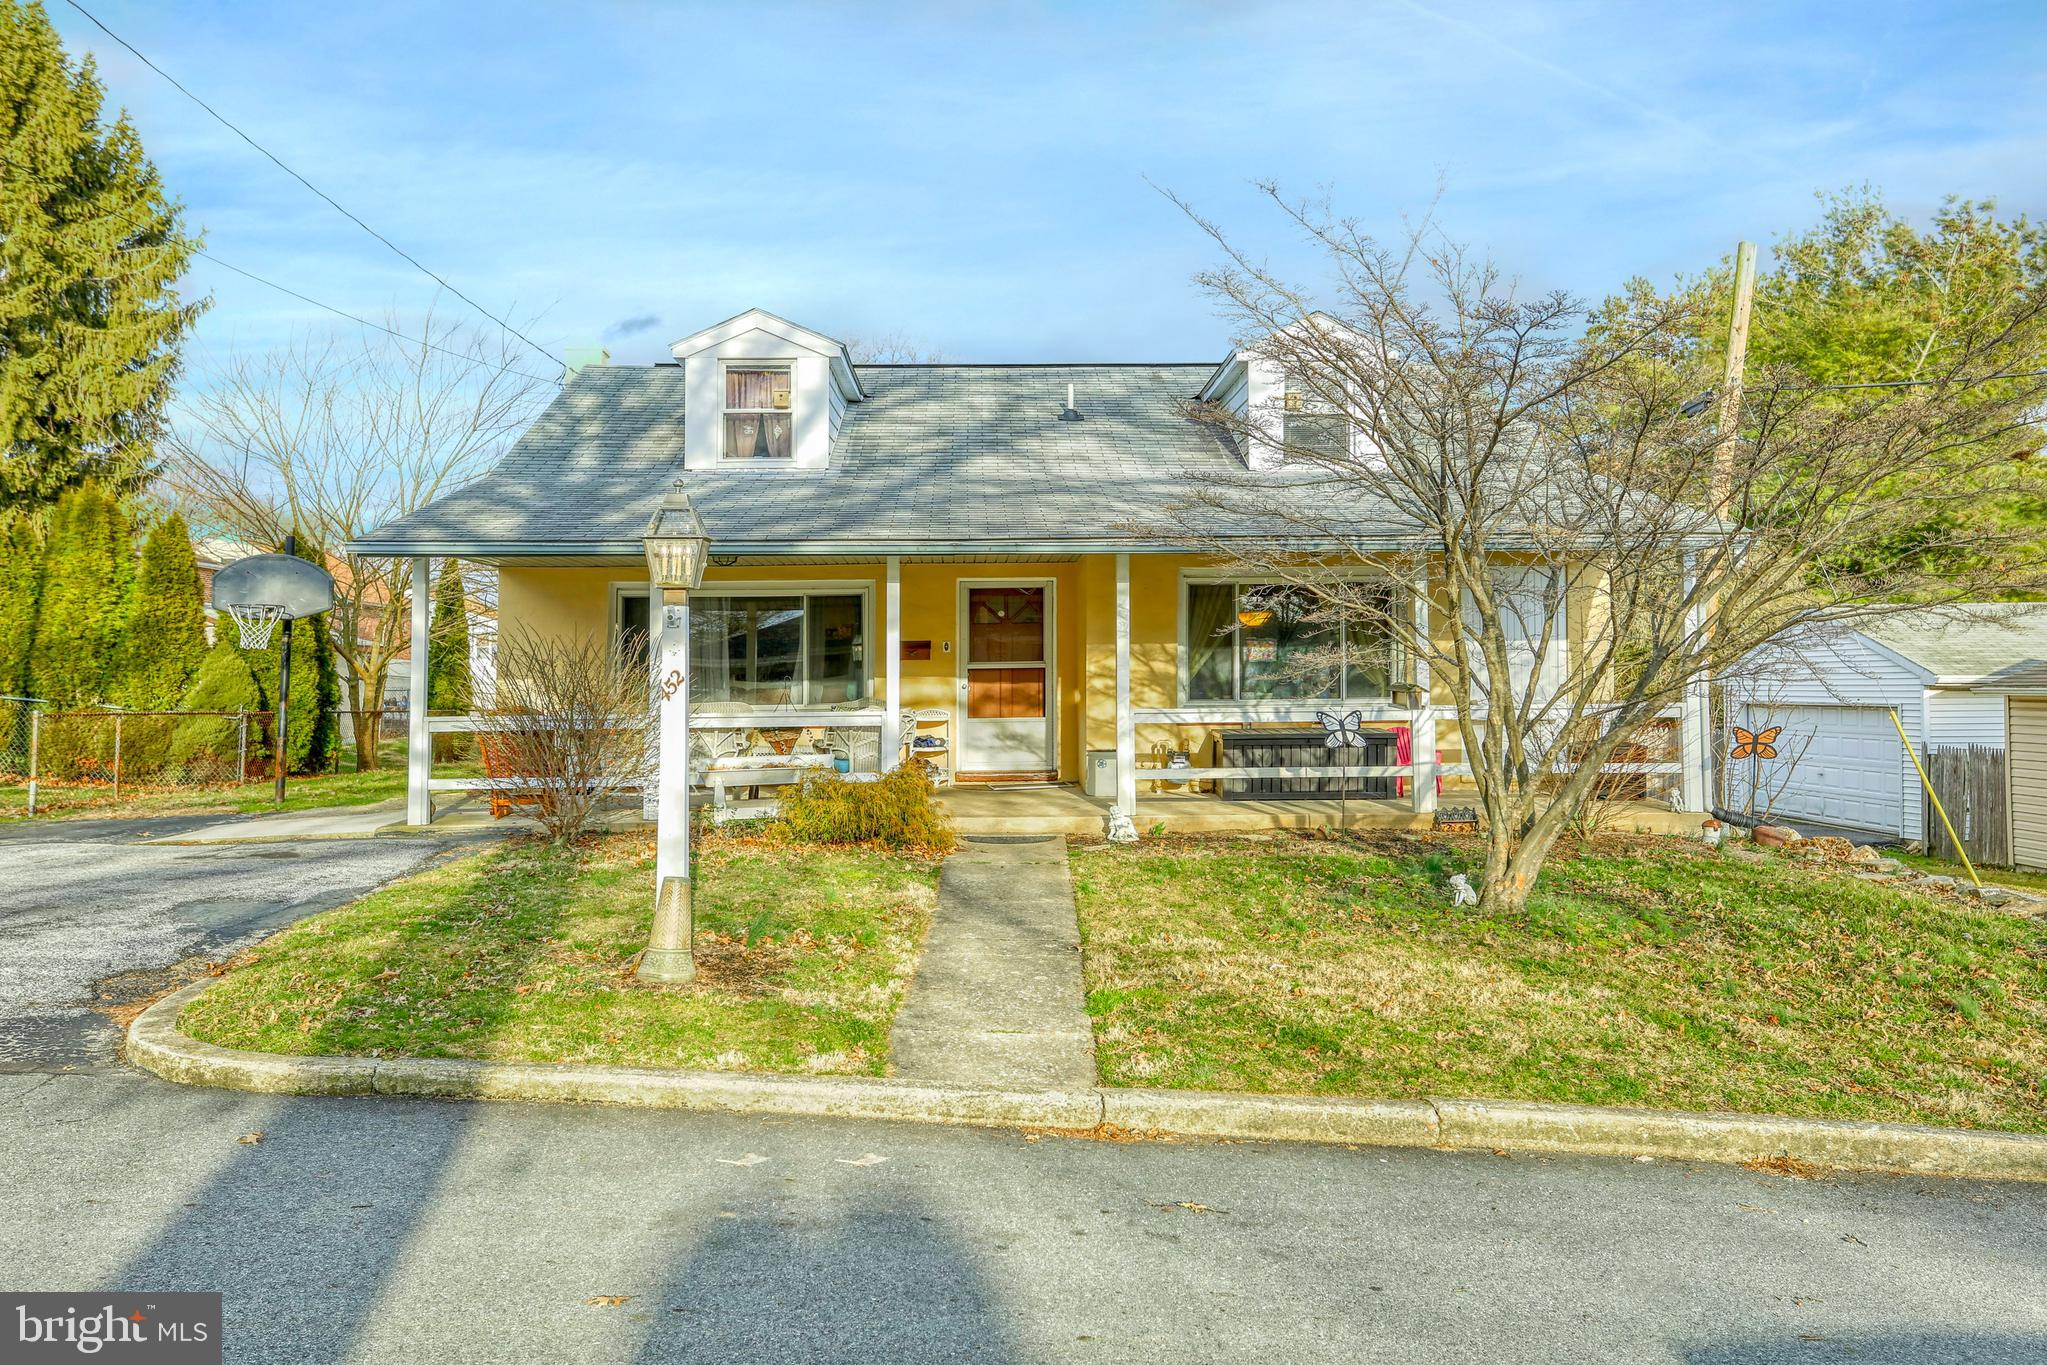 452 N 4TH STREET, WRIGHTSVILLE, PA 17368